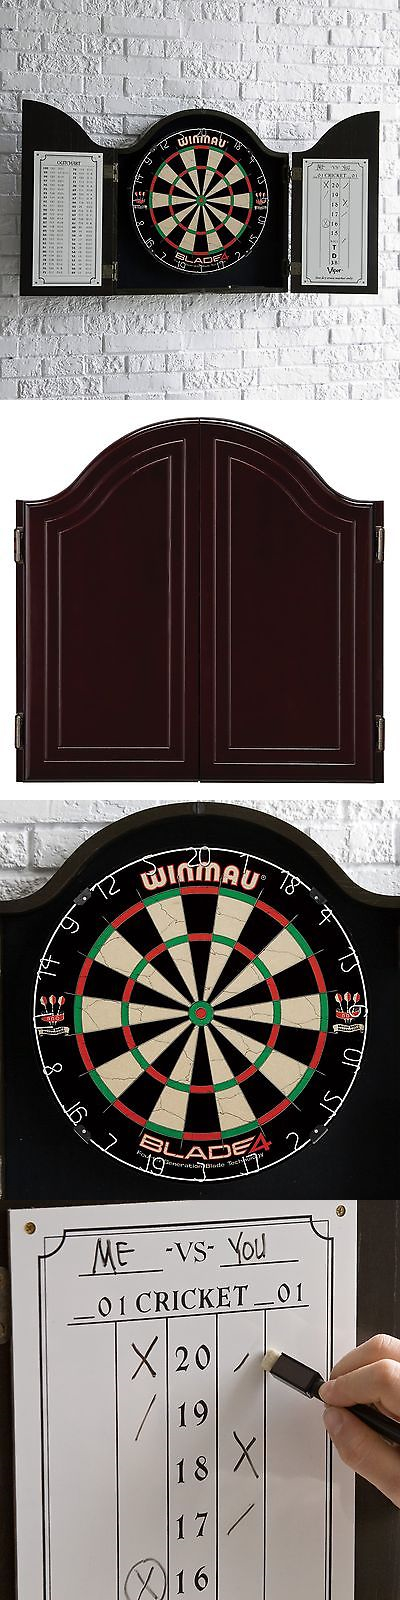 Dart Boards 72576: Blade 4 Bristle Dart Board Winmau Cabinet Set ...